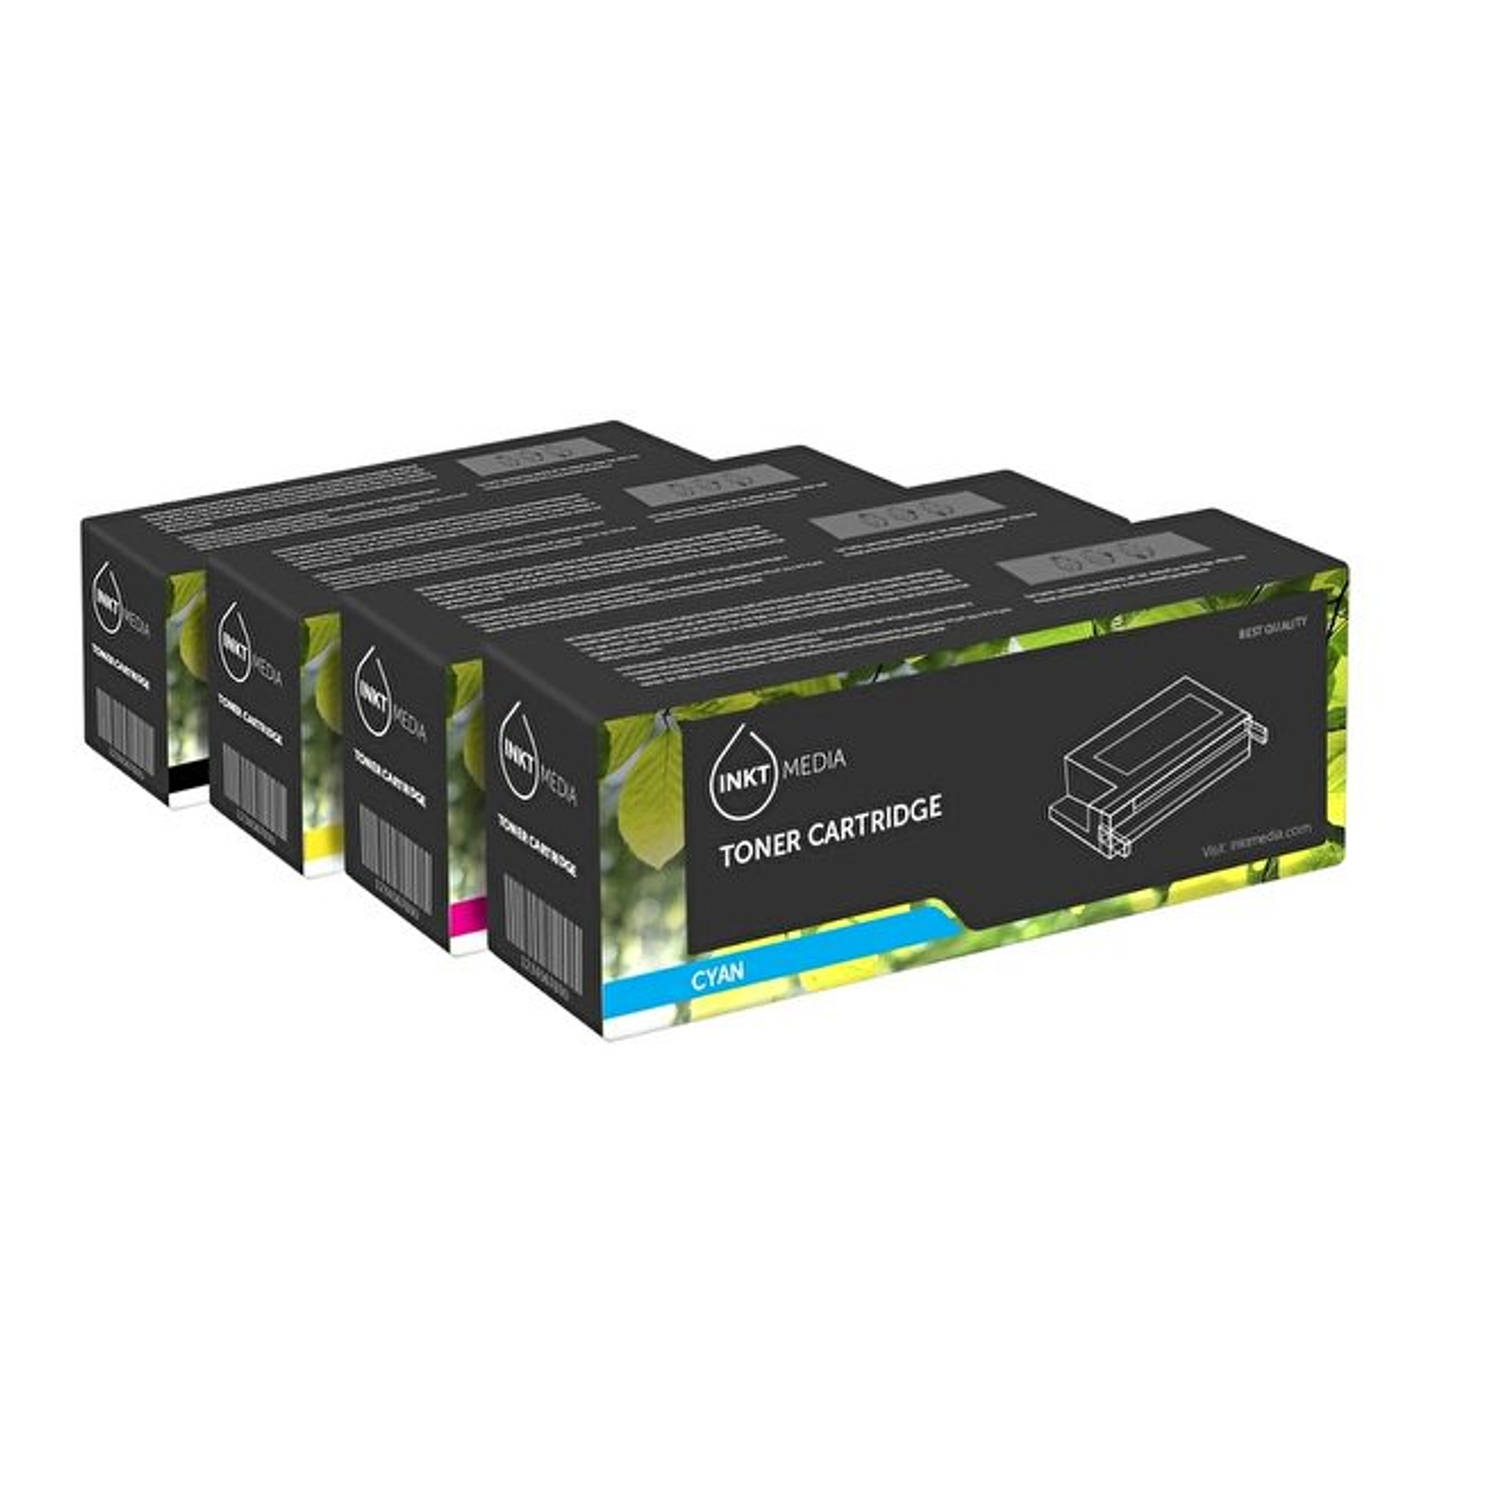 Inktmedia® - Toner cartridge - Alternatief voor de Hp 125A HP CB540A, 541A, 542A, 543A